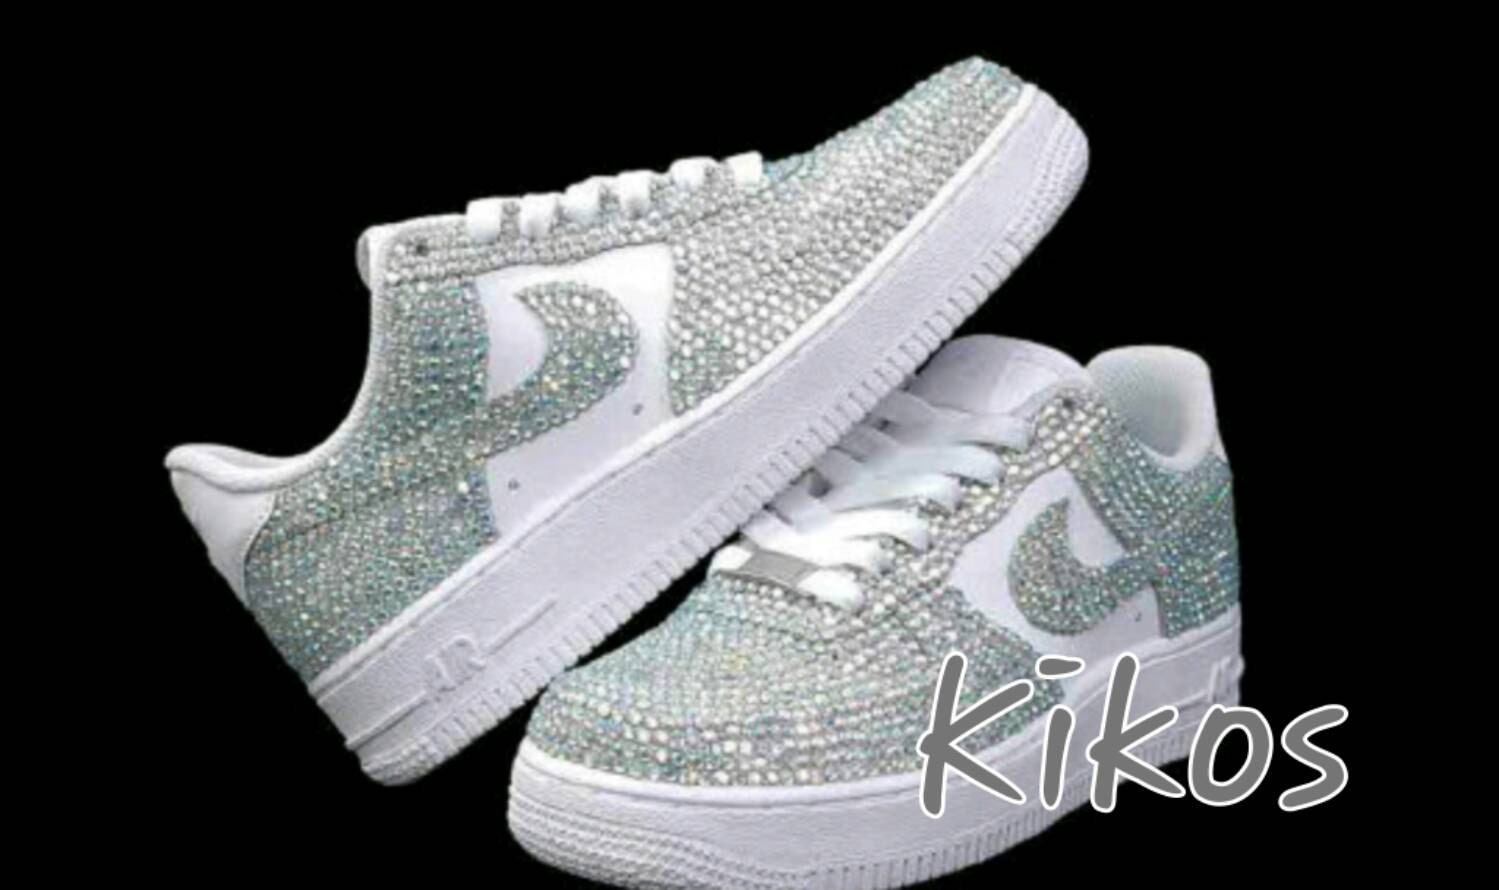 ... details for 603fc ef26c Swarovski Nike Air Force 1s Womens sizes Etsy  ... bfa1939507